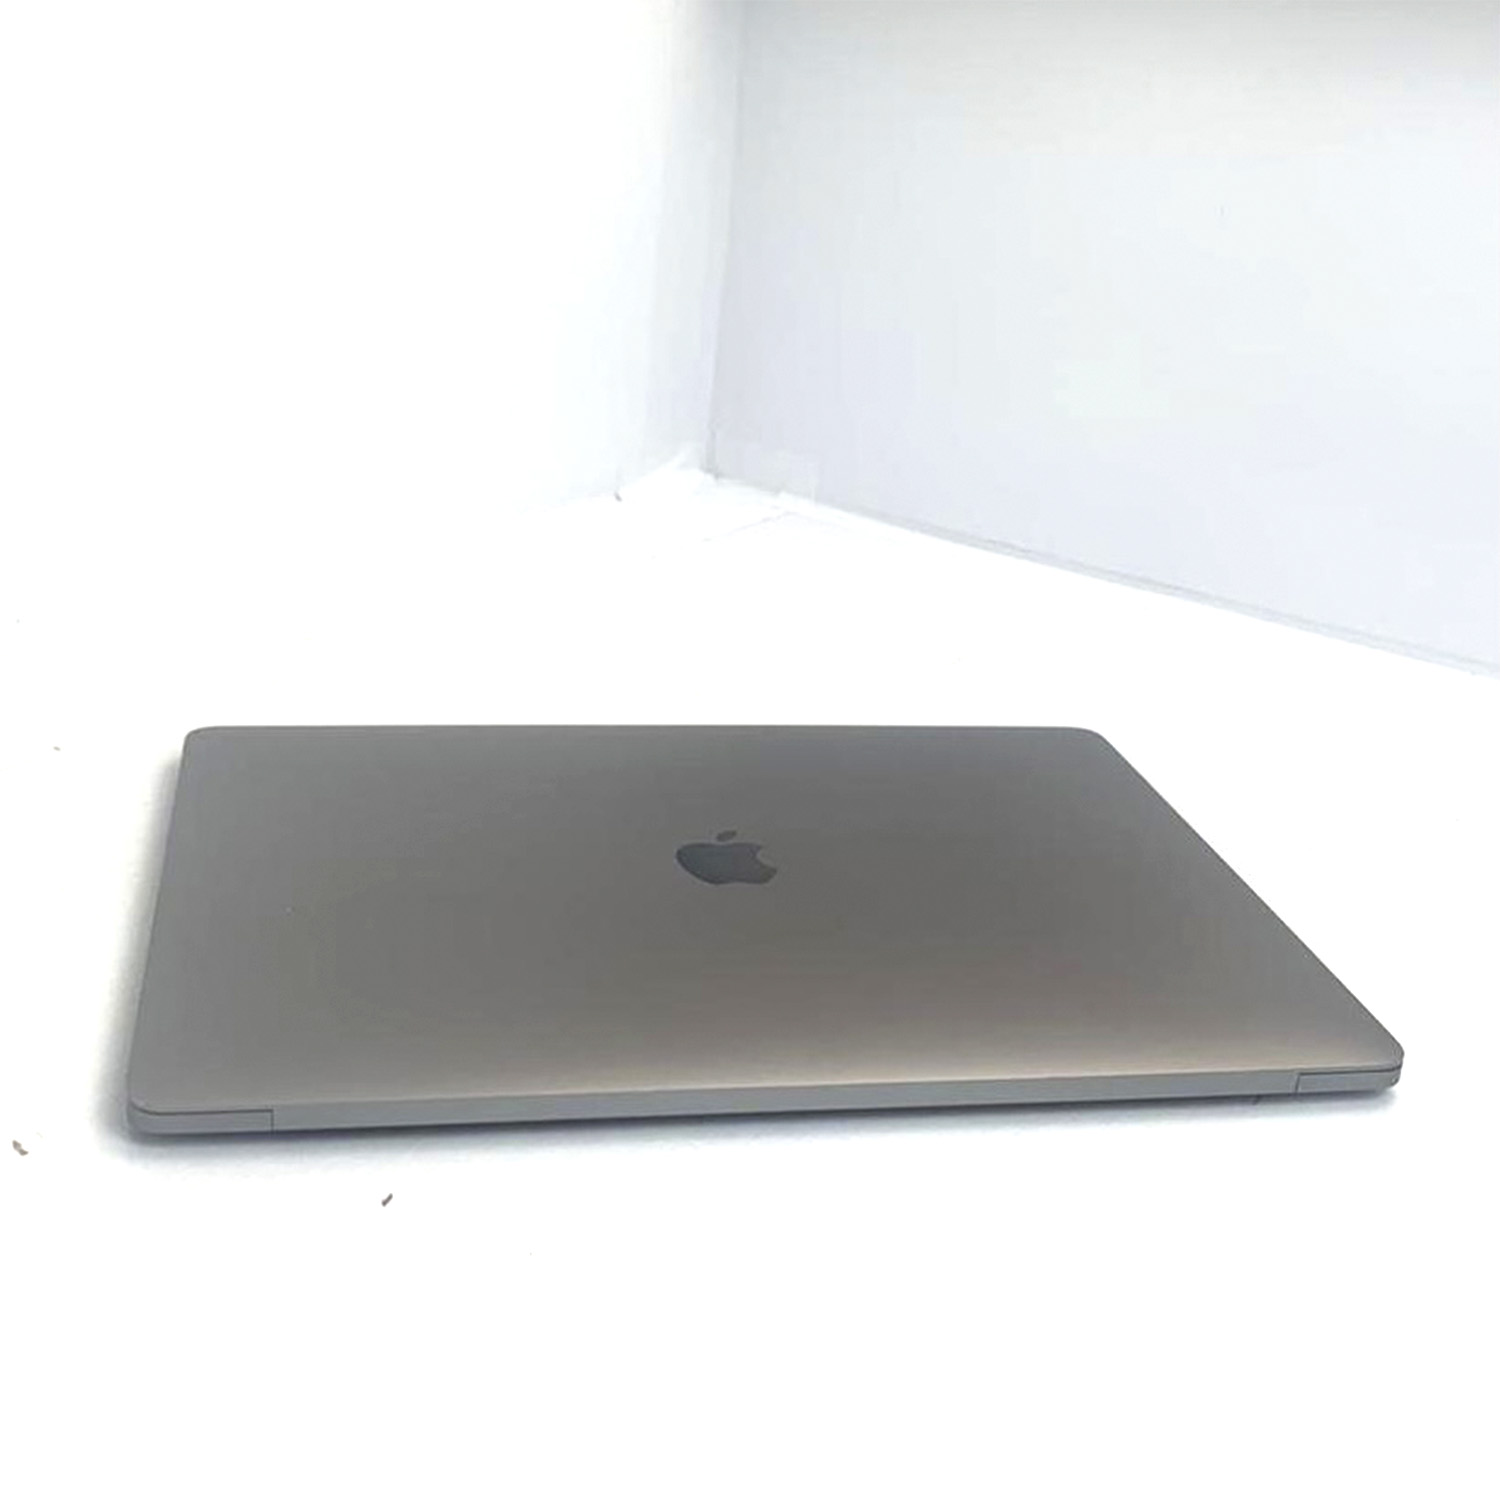 Macbook Pro 15 Silver i7 2.2Ghz 16GB 256GB SSD MR932LL/A Seminovo